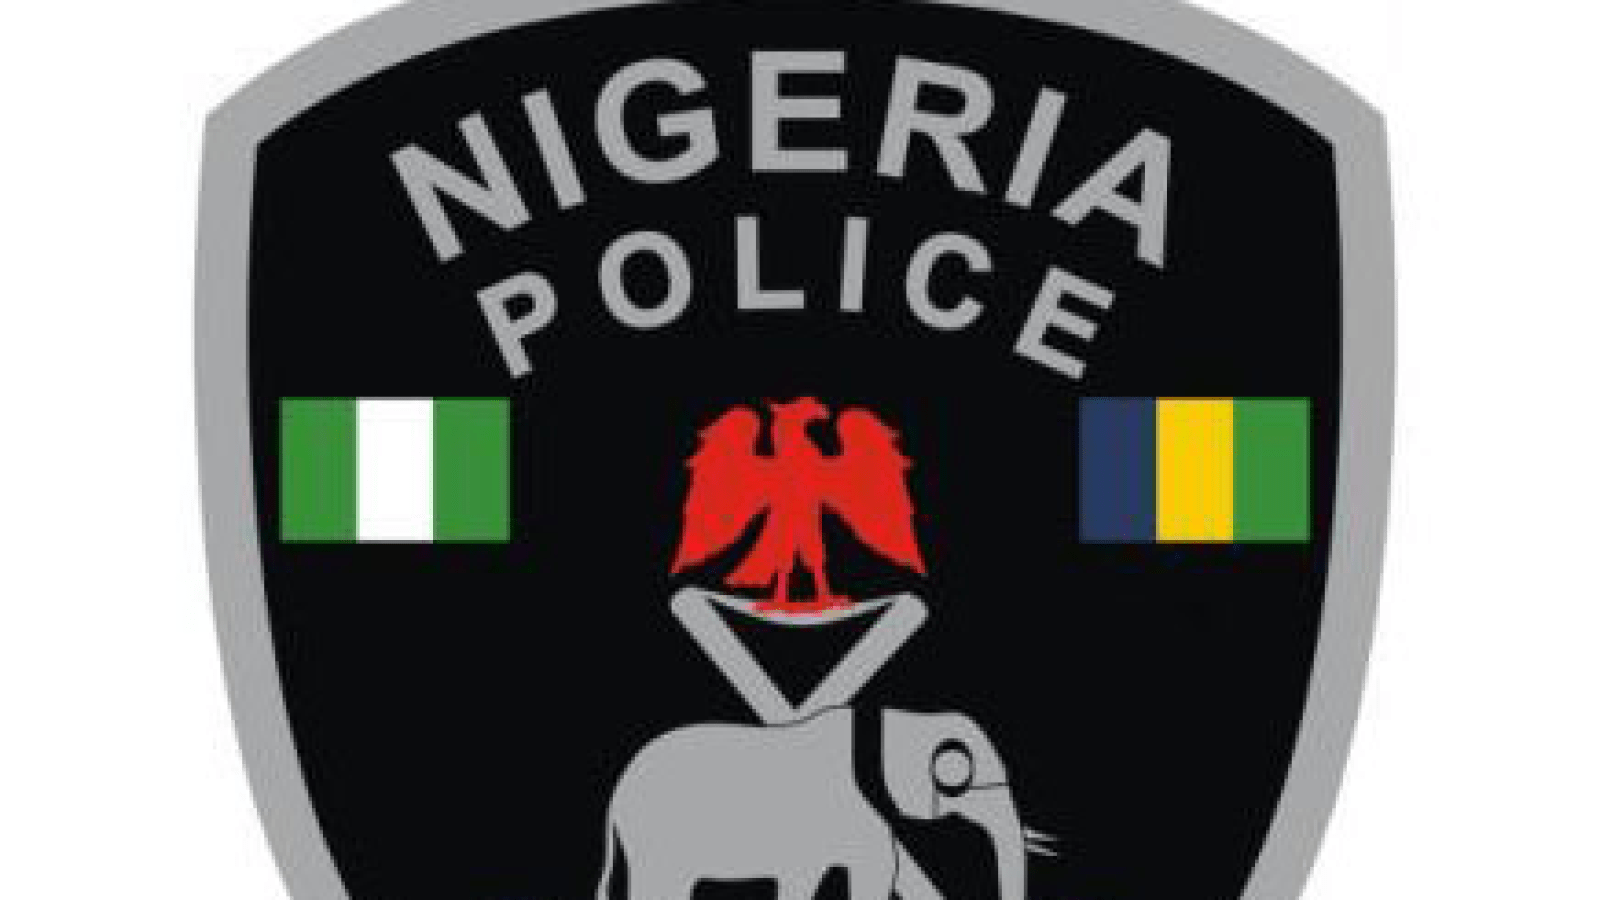 Police rescue abandoned, Ekiti bank robbery, Police arrest six persons, Disarm people with unlawful arms, Lady allegedly raped to death, Police uncover corpse, screening exercise for constables, police brutality, 32-year-old man locked up, Police postpone exams, serial rapist in Delta, Police arrest Anambra robbers, Police arrest man, Police Ibadan, Police promote, Adamawa, police, murder